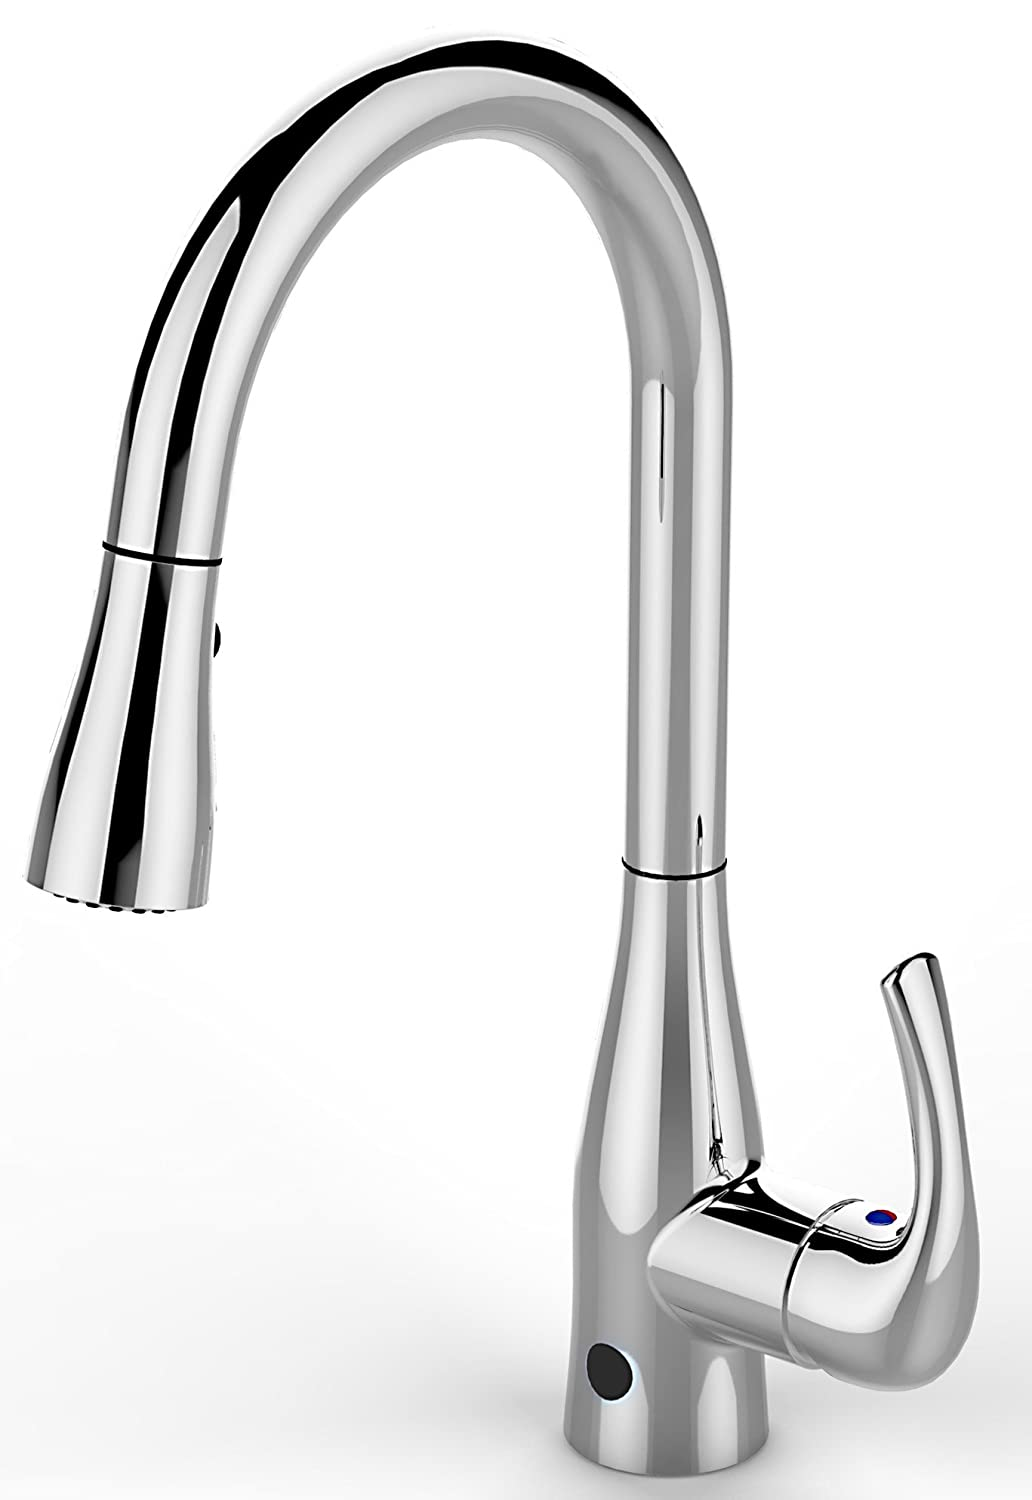 FLOW Faucet From BioBidet, Hands Free Motion Sensing Technology, Chrome Kitchen  Faucet, Dual Spray Head Offers 2 Styles Of Water, Easy Installation, ...